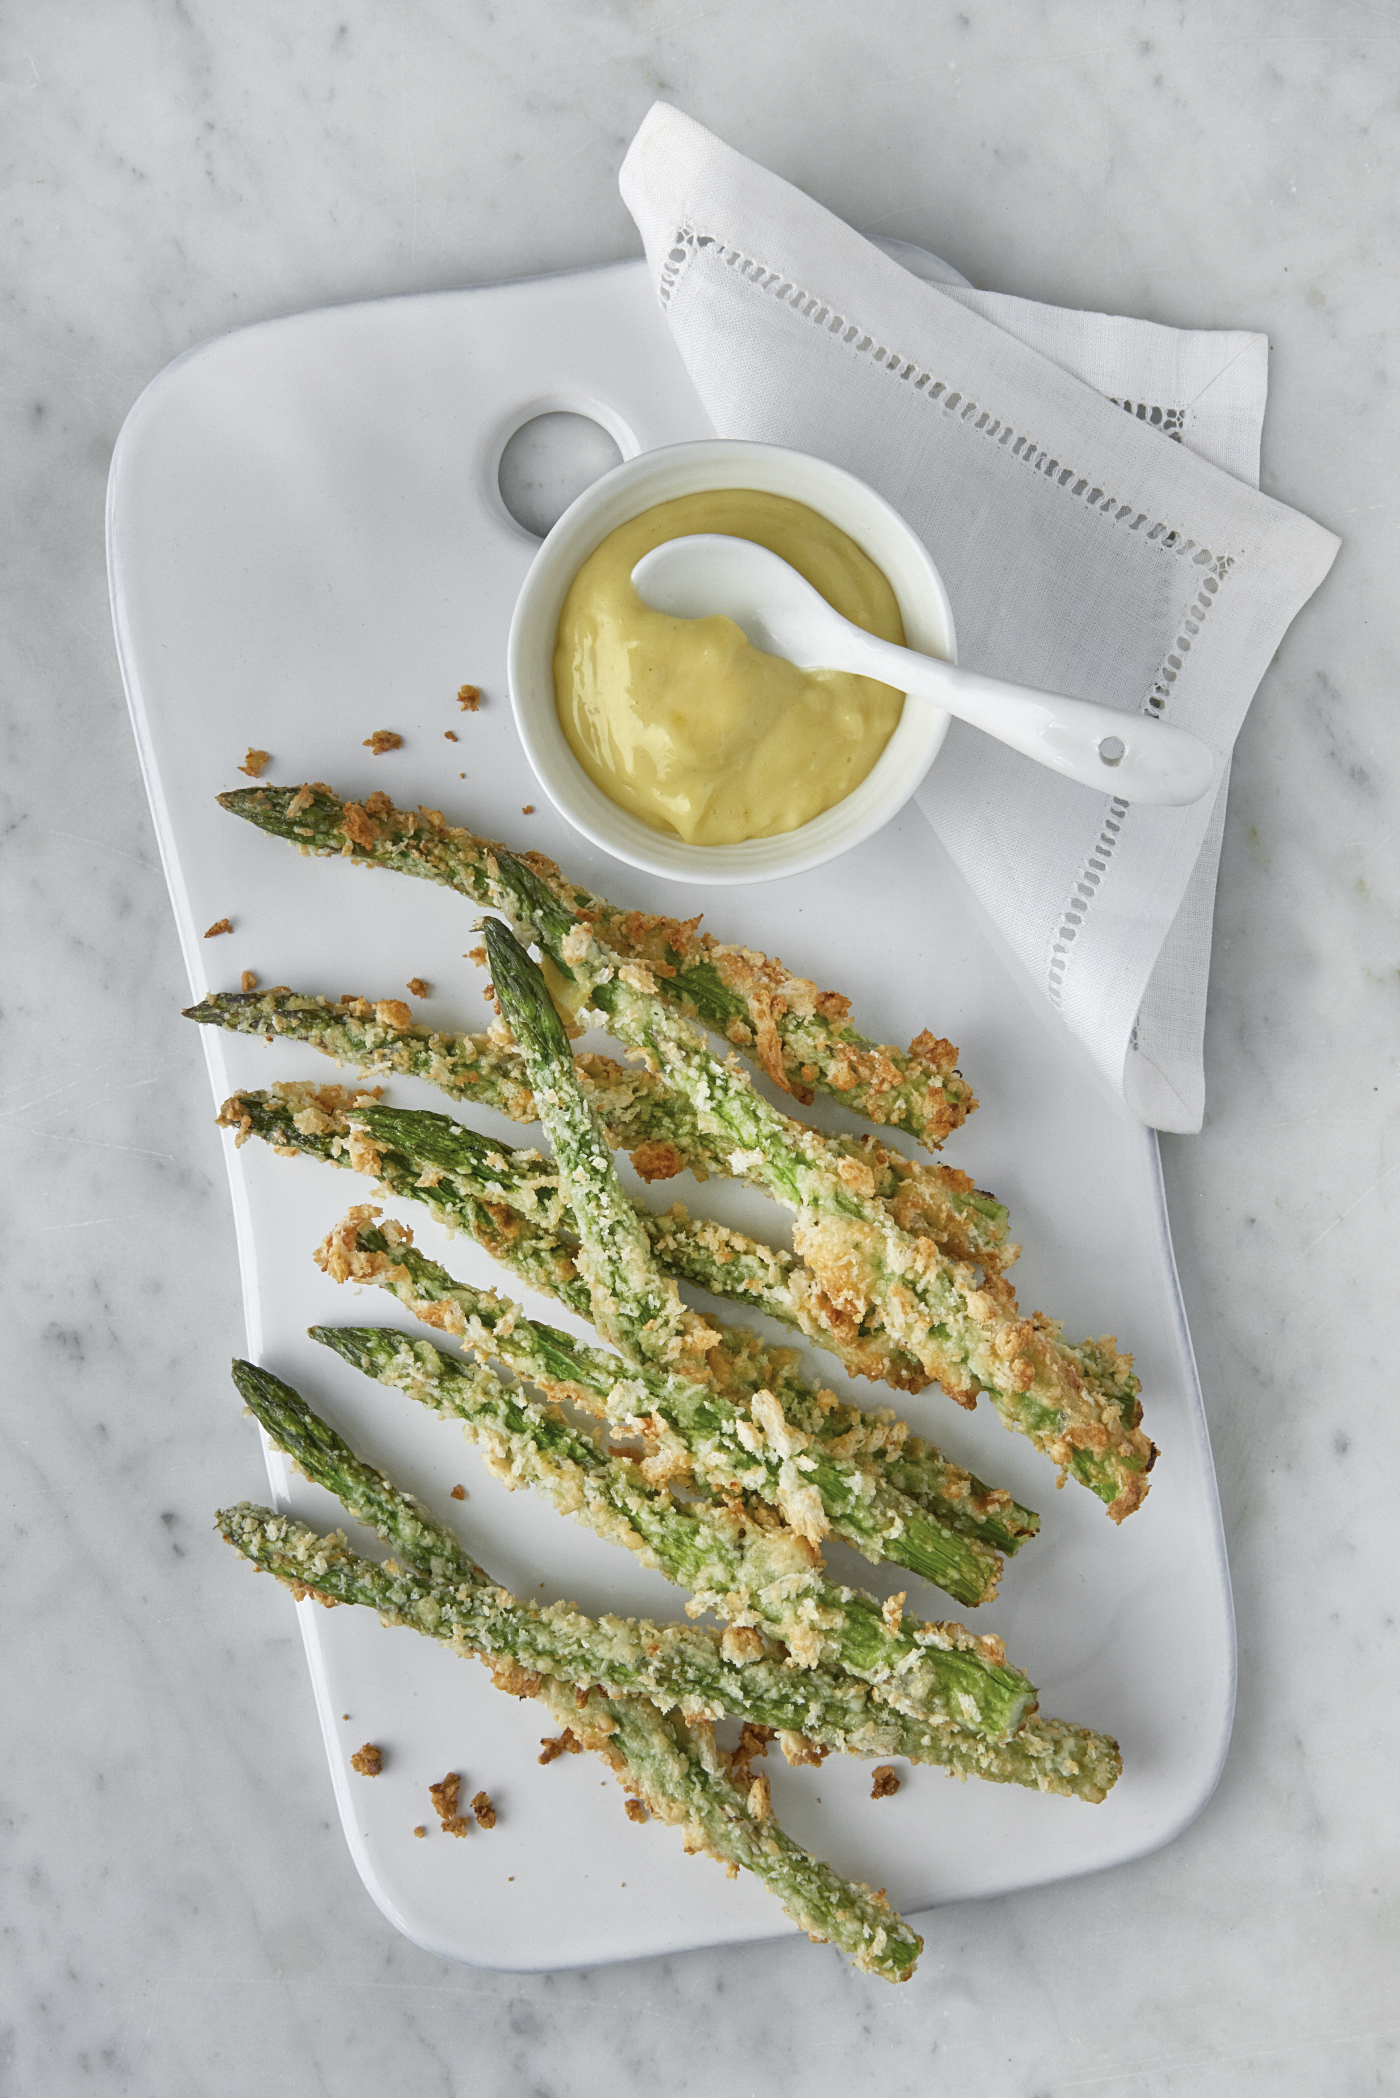 Chef Clodagh McKenna's Crispy Skellig Sweet Cheddar and Parmesan Asparagus Spears With Lemon Aioli Dip credit: clodagh mckenna